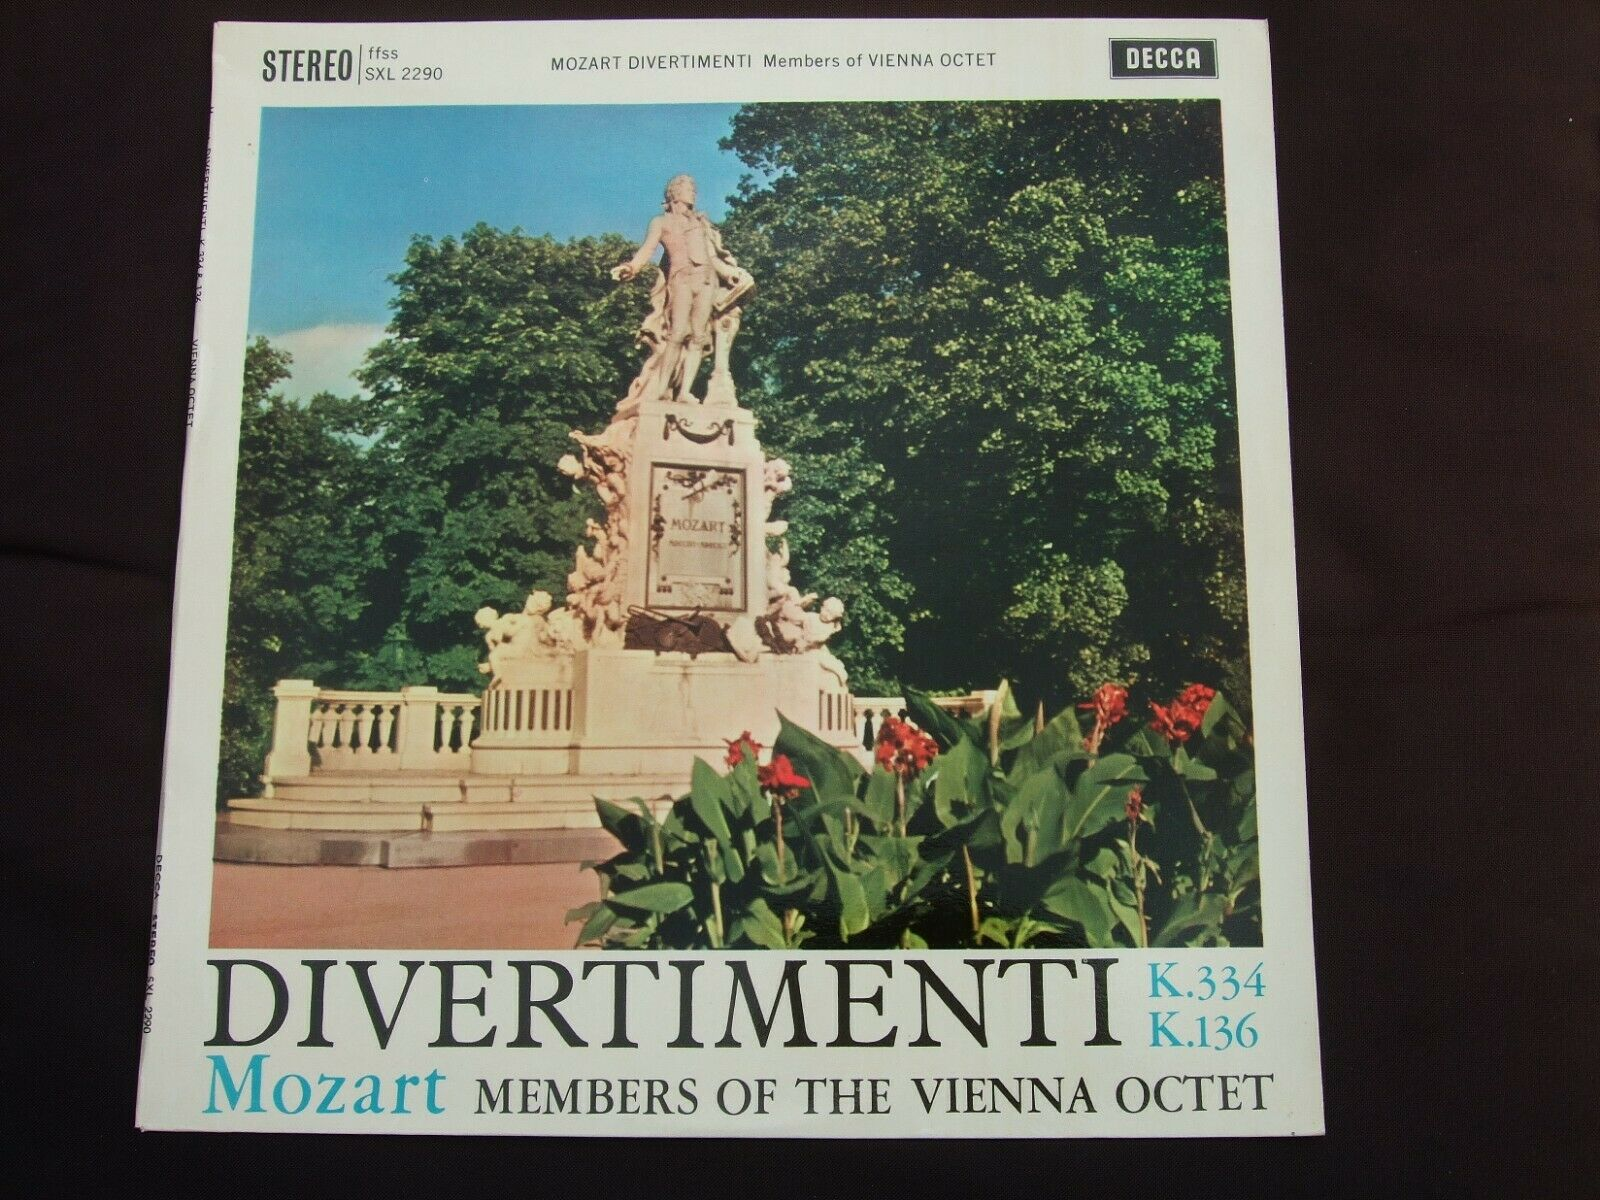 SXL 2290  WBG ED1 MOZART DIVERTIMENTI  MEMBERS OF VIENNA OCTET 1961 NM/NEAR MINT